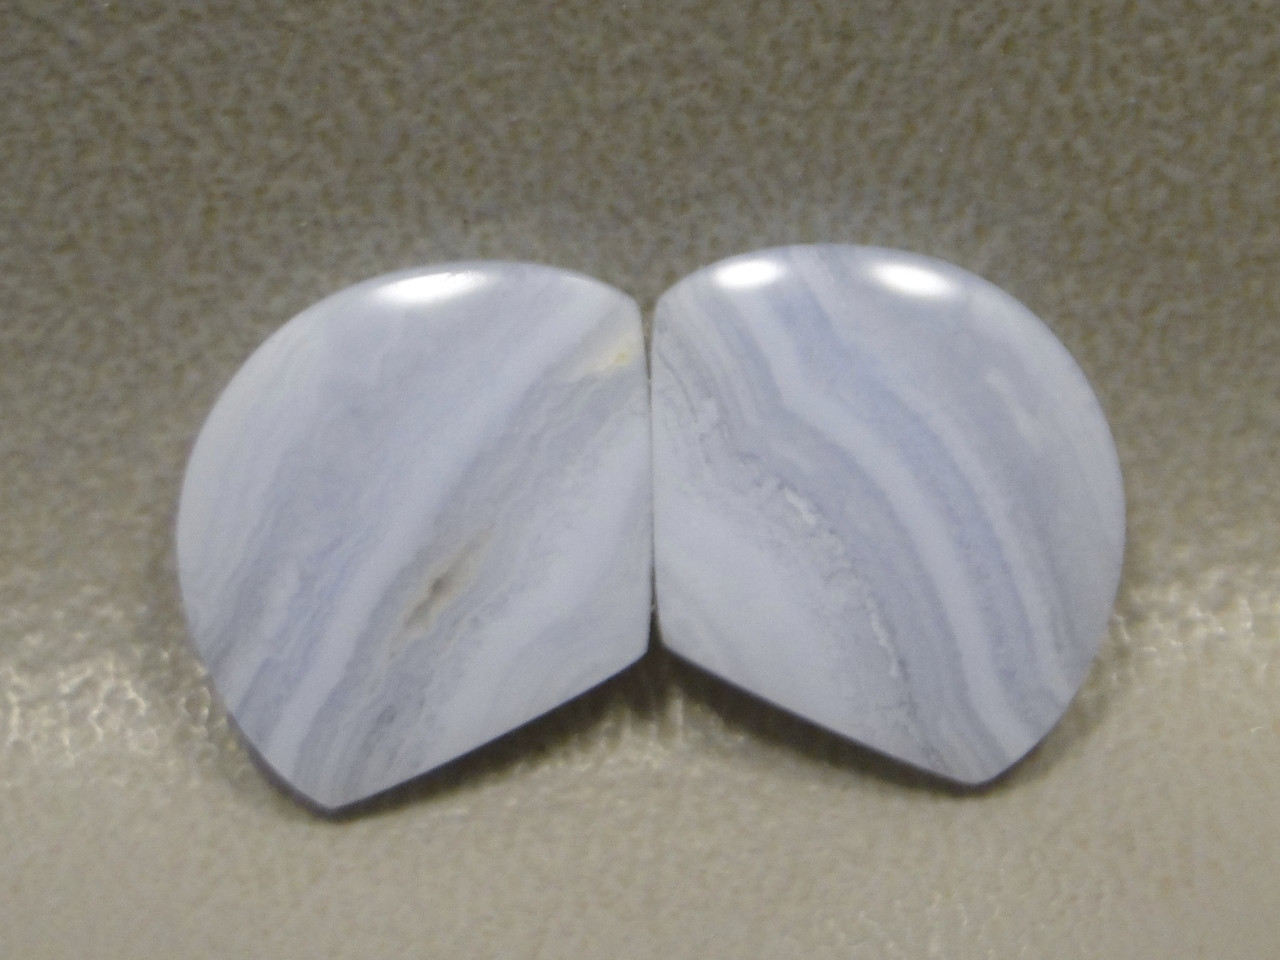 Blue Lace Agate Cabochons Matched Pair Designer Gemstone  #20